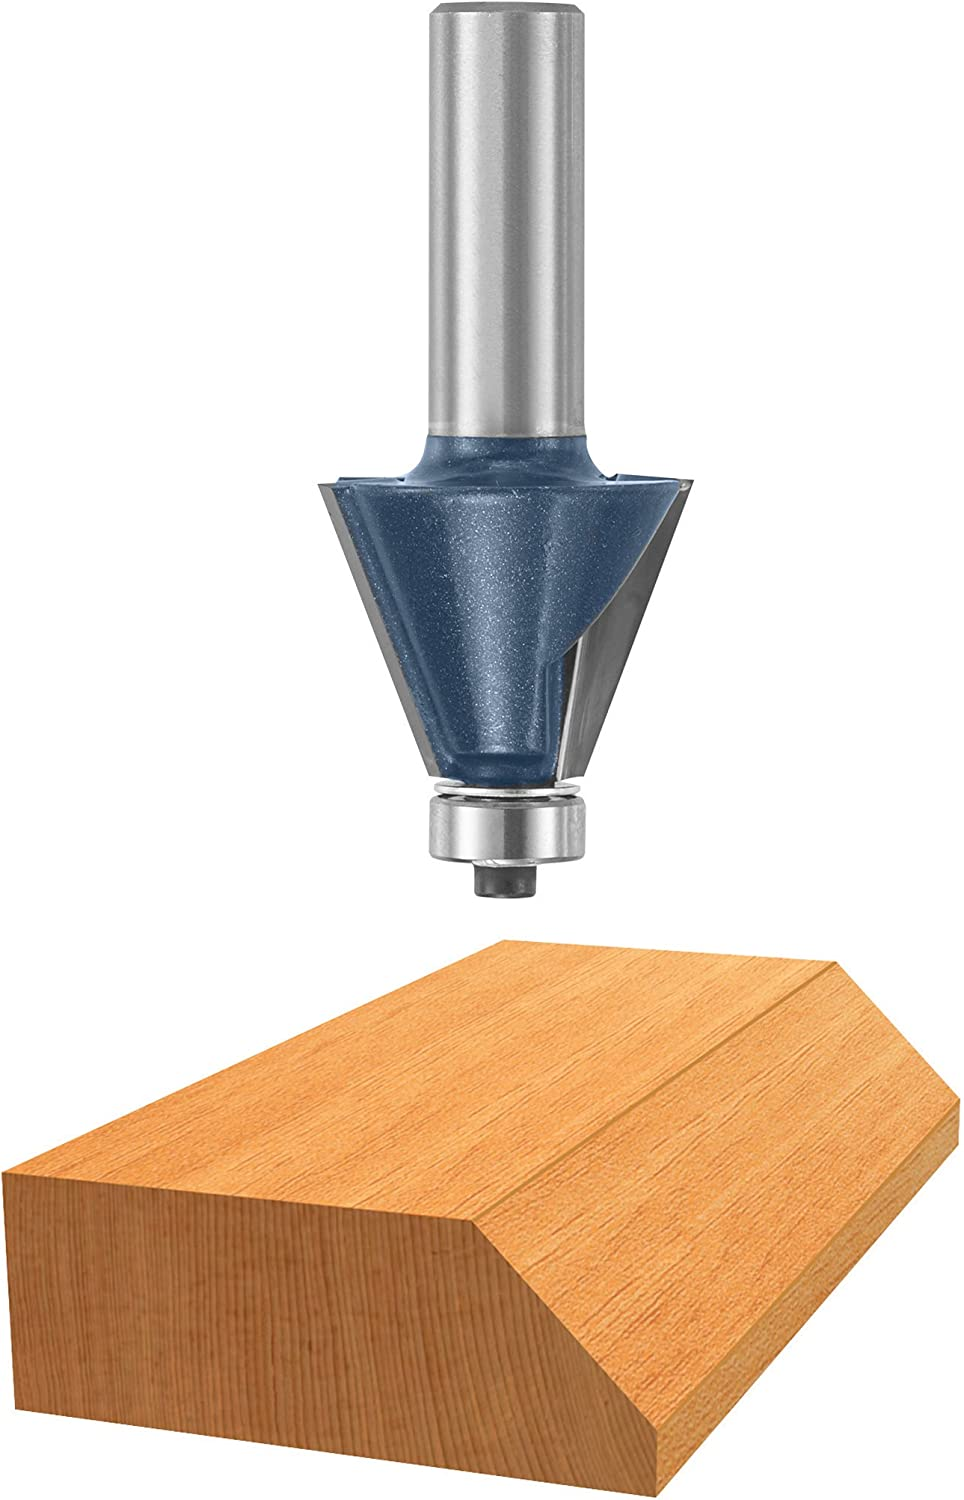 BOSCH 85299M 1-9 32 In. x Philadelphia Mall degree Chamfer 22.5 Bit Tipped Carbide New product